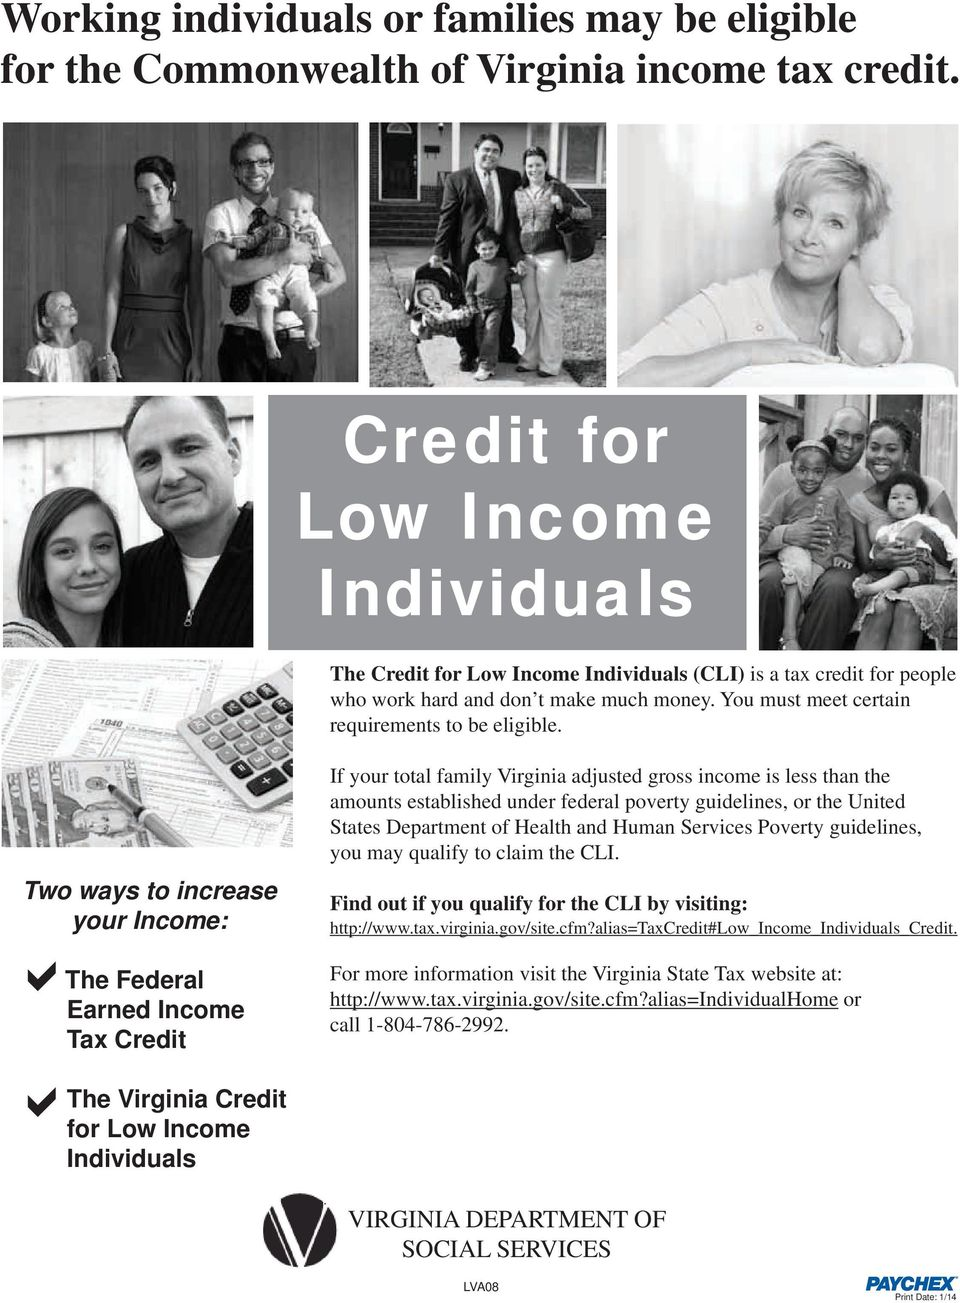 Two ways to increase your Income: a The Federal Earned Income Tax Credit If your total family Virginia adjusted gross income is less than the amounts established under federal poverty guidelines, or